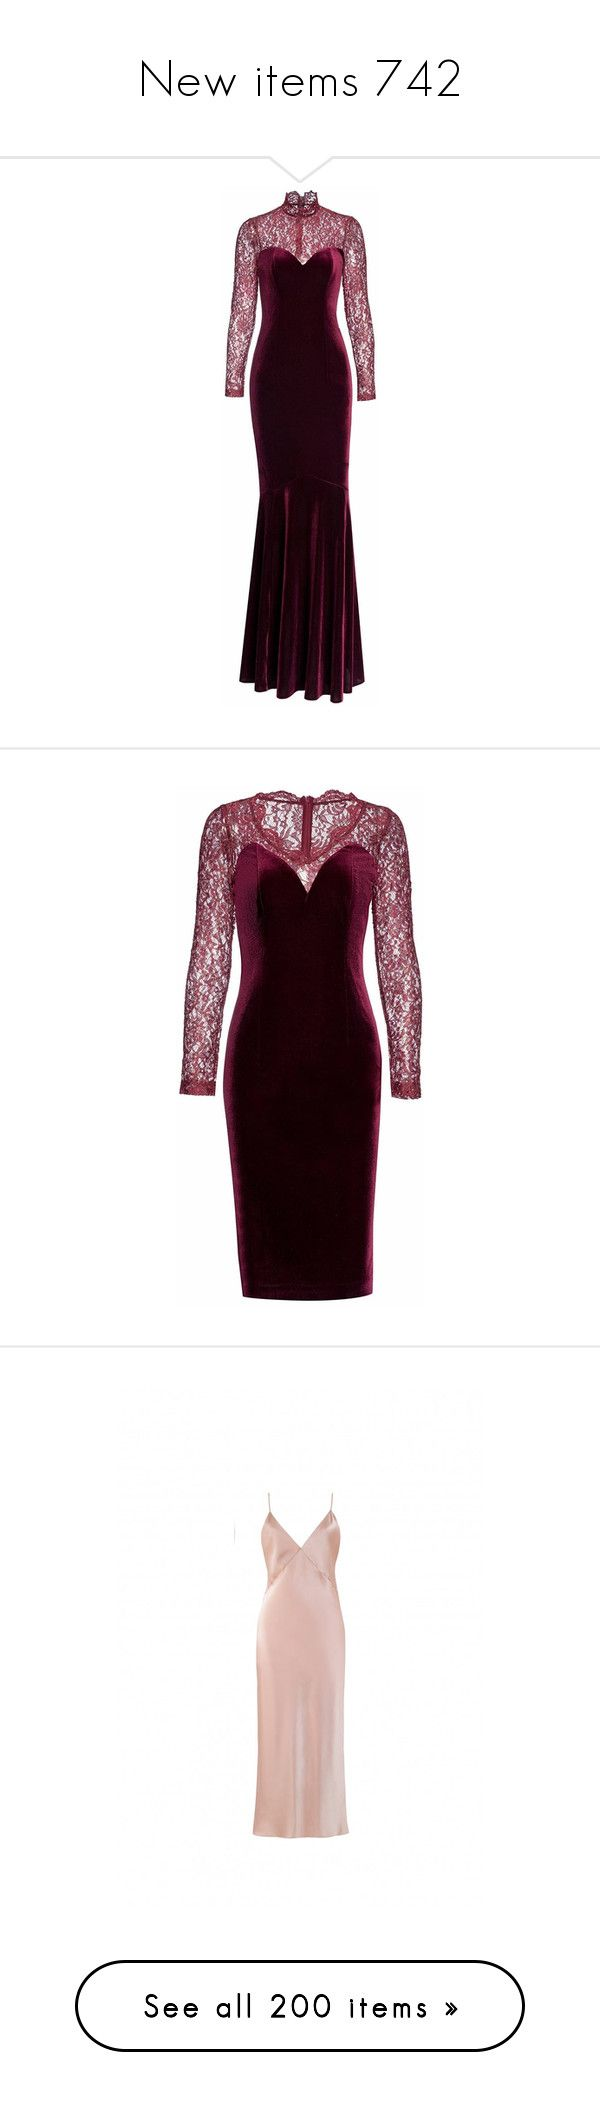 """""""New items 742"""" by cavallaro ❤ liked on Polyvore featuring dresses, long velvet dress, purple evening dress, purple dresses, holiday cocktail dresses, long evening dresses, purple cocktail dresses, midi cocktail dress, cocktail party dress and holiday party dresses"""